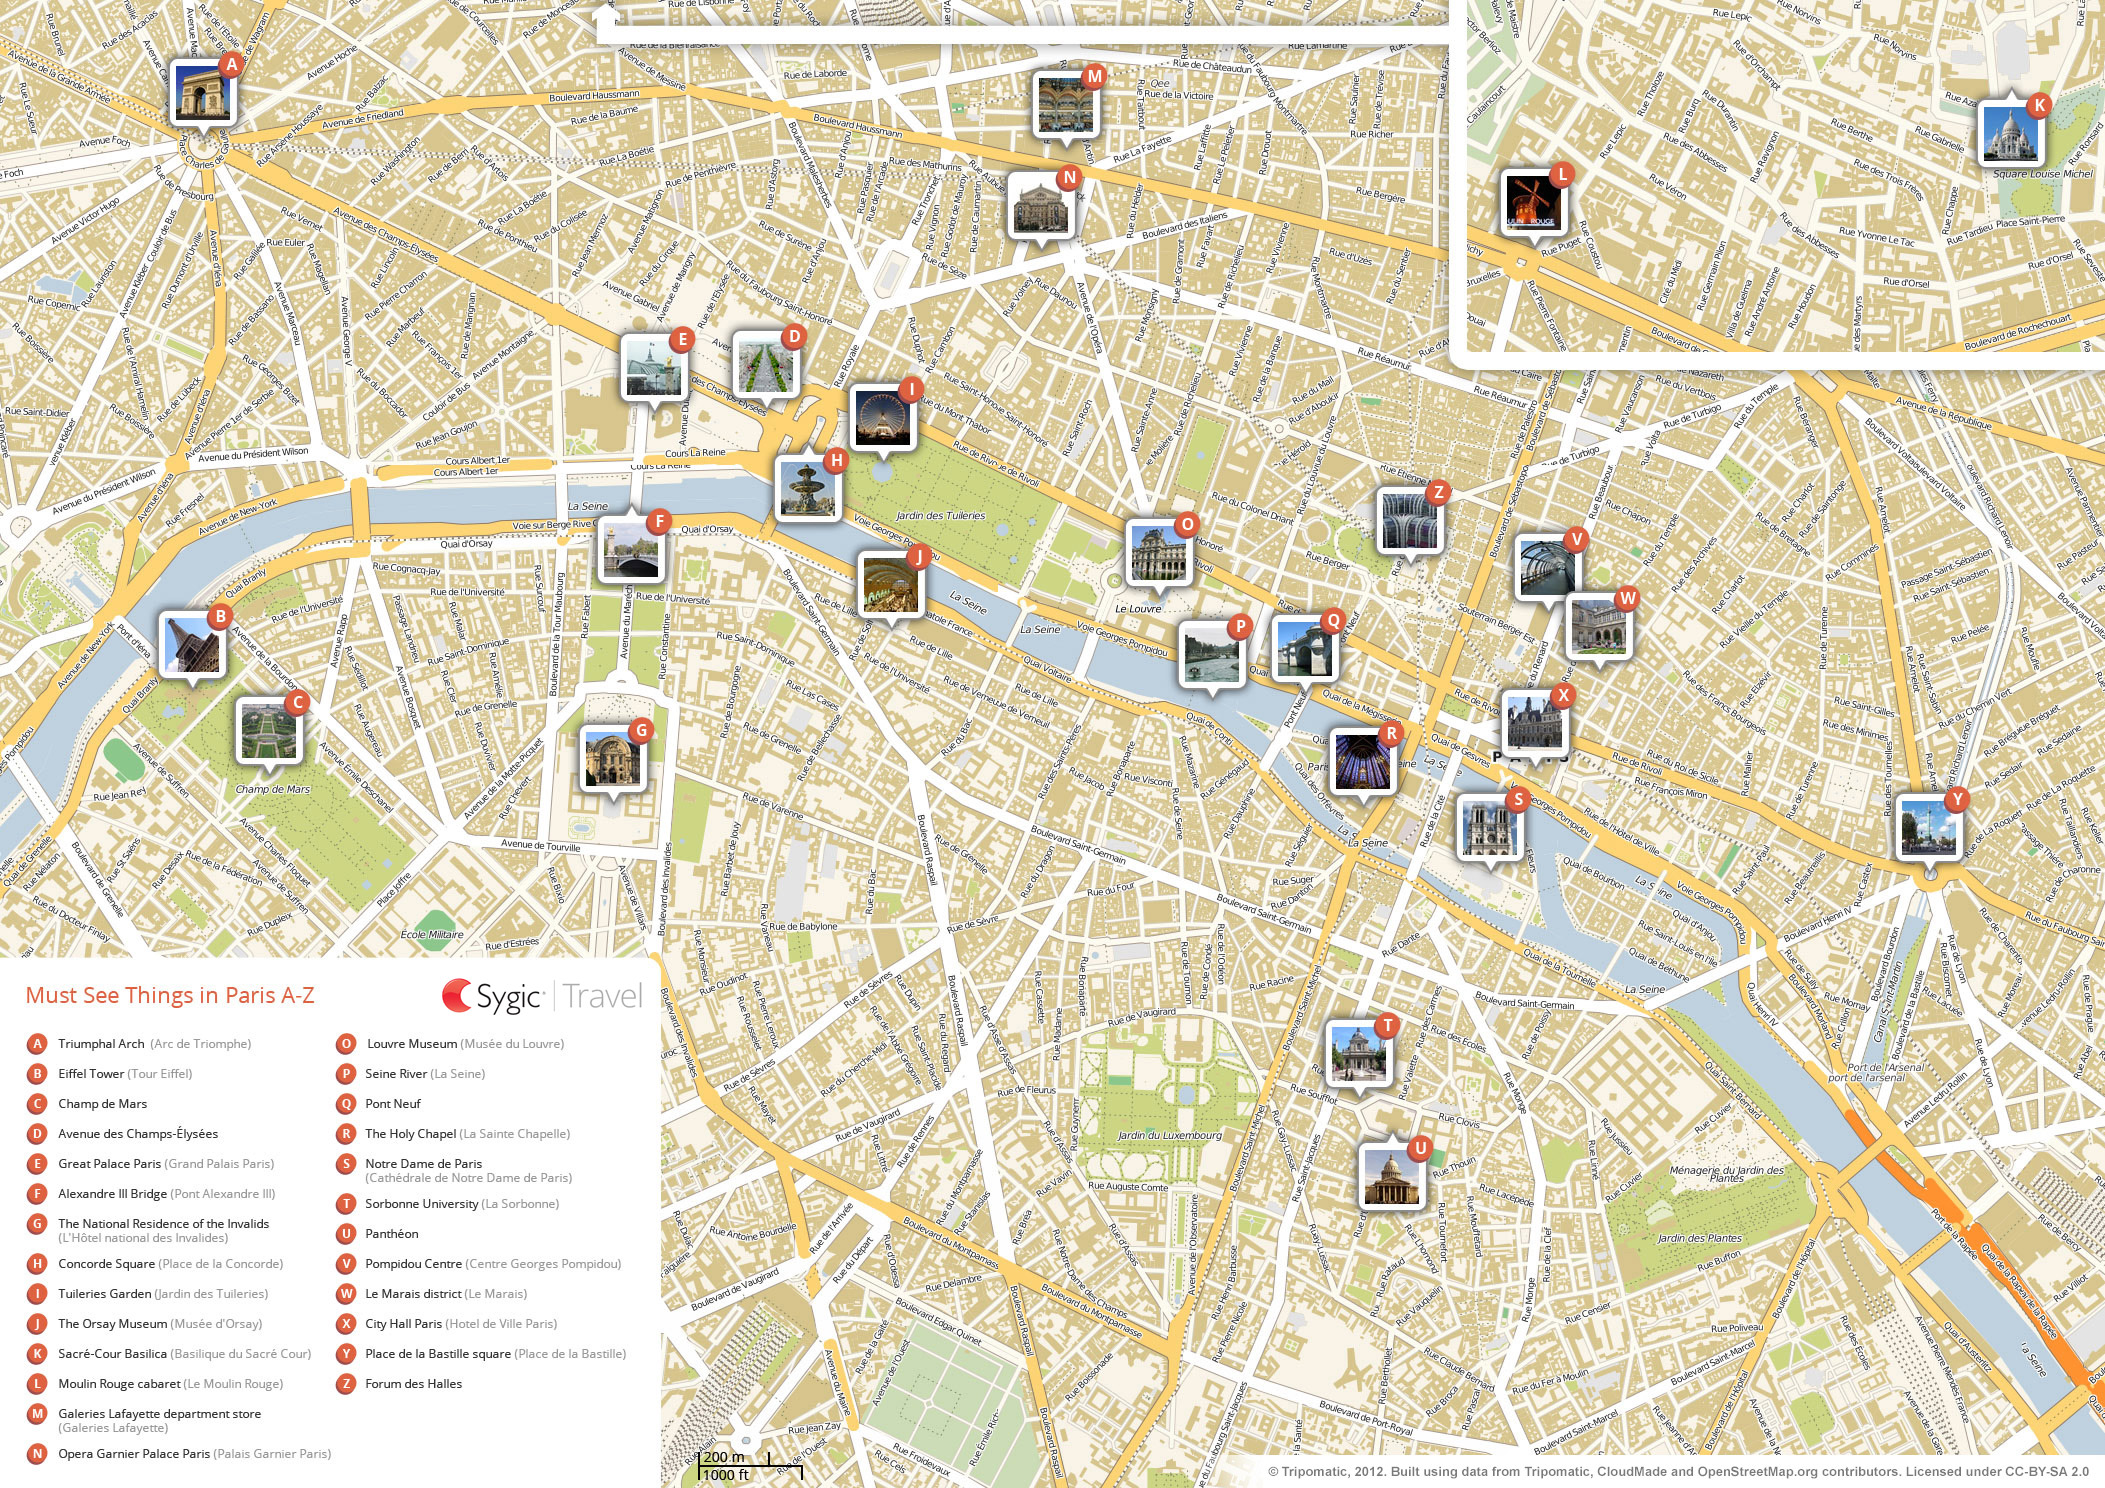 Paris Printable Tourist Map – Paris France Tourist Attractions Map